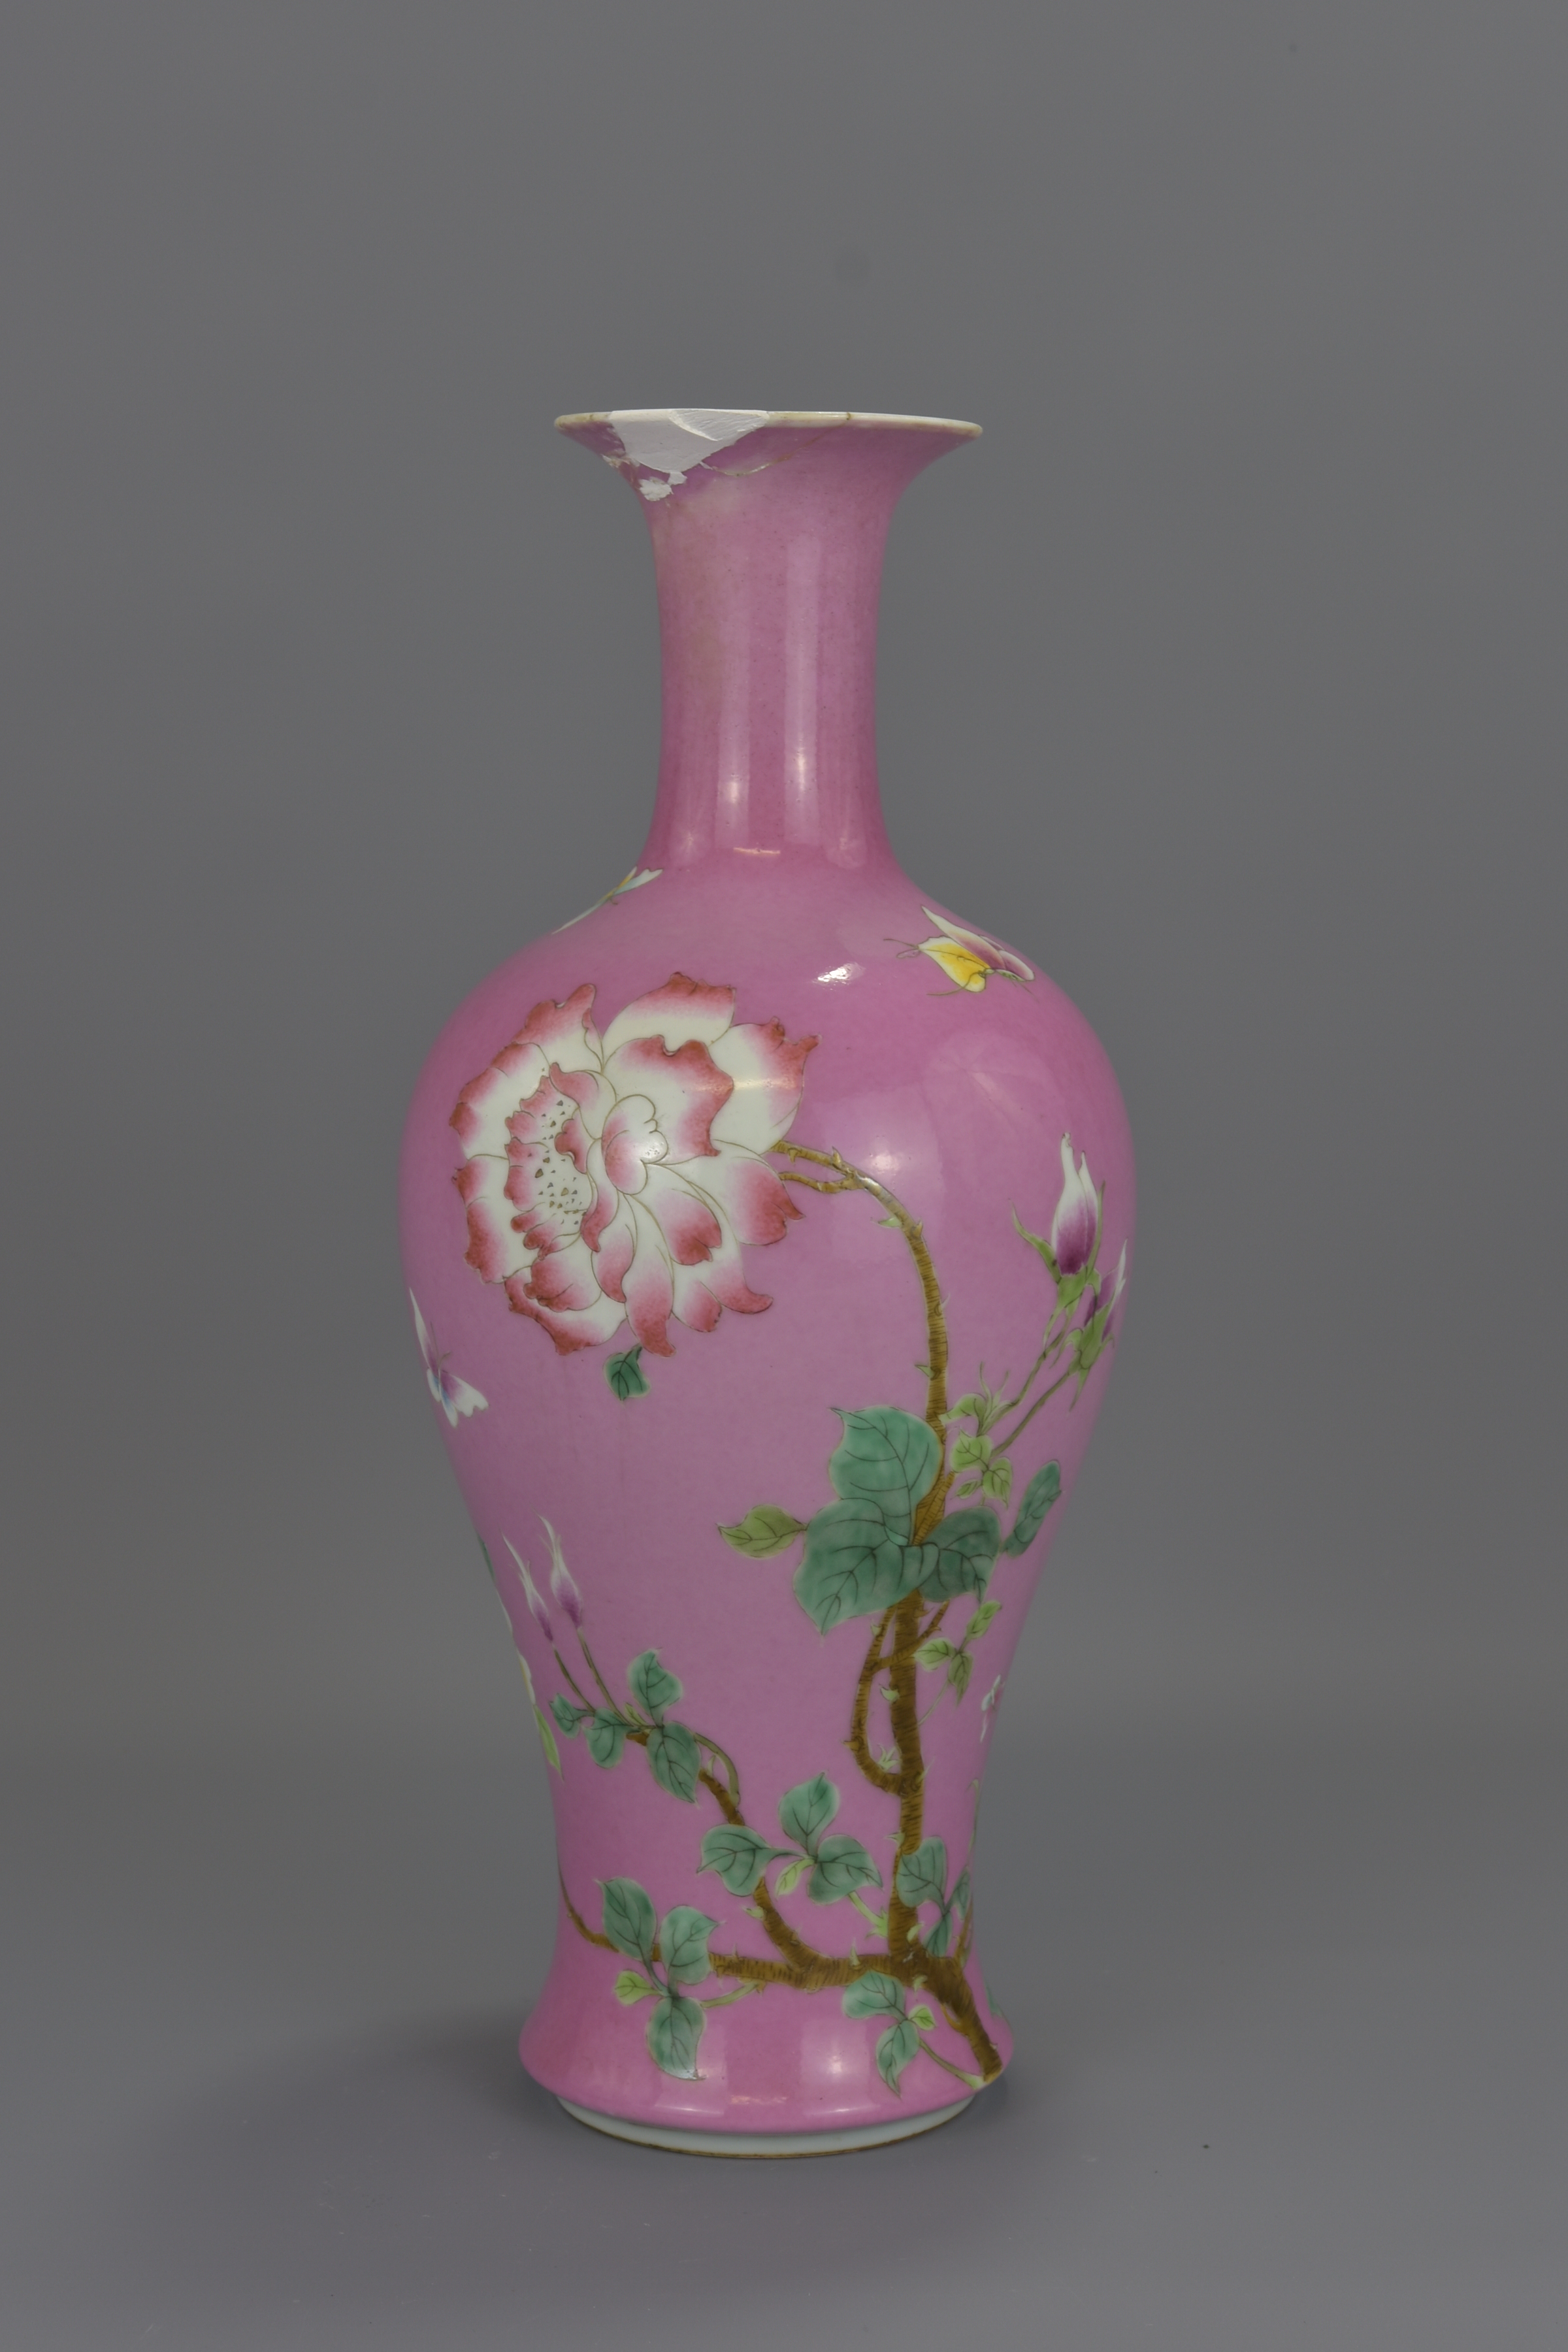 Lot 24 - A Chinese 18th century ruby-pink enamelled porcelain vase decorated with flowers and butterflies. Un